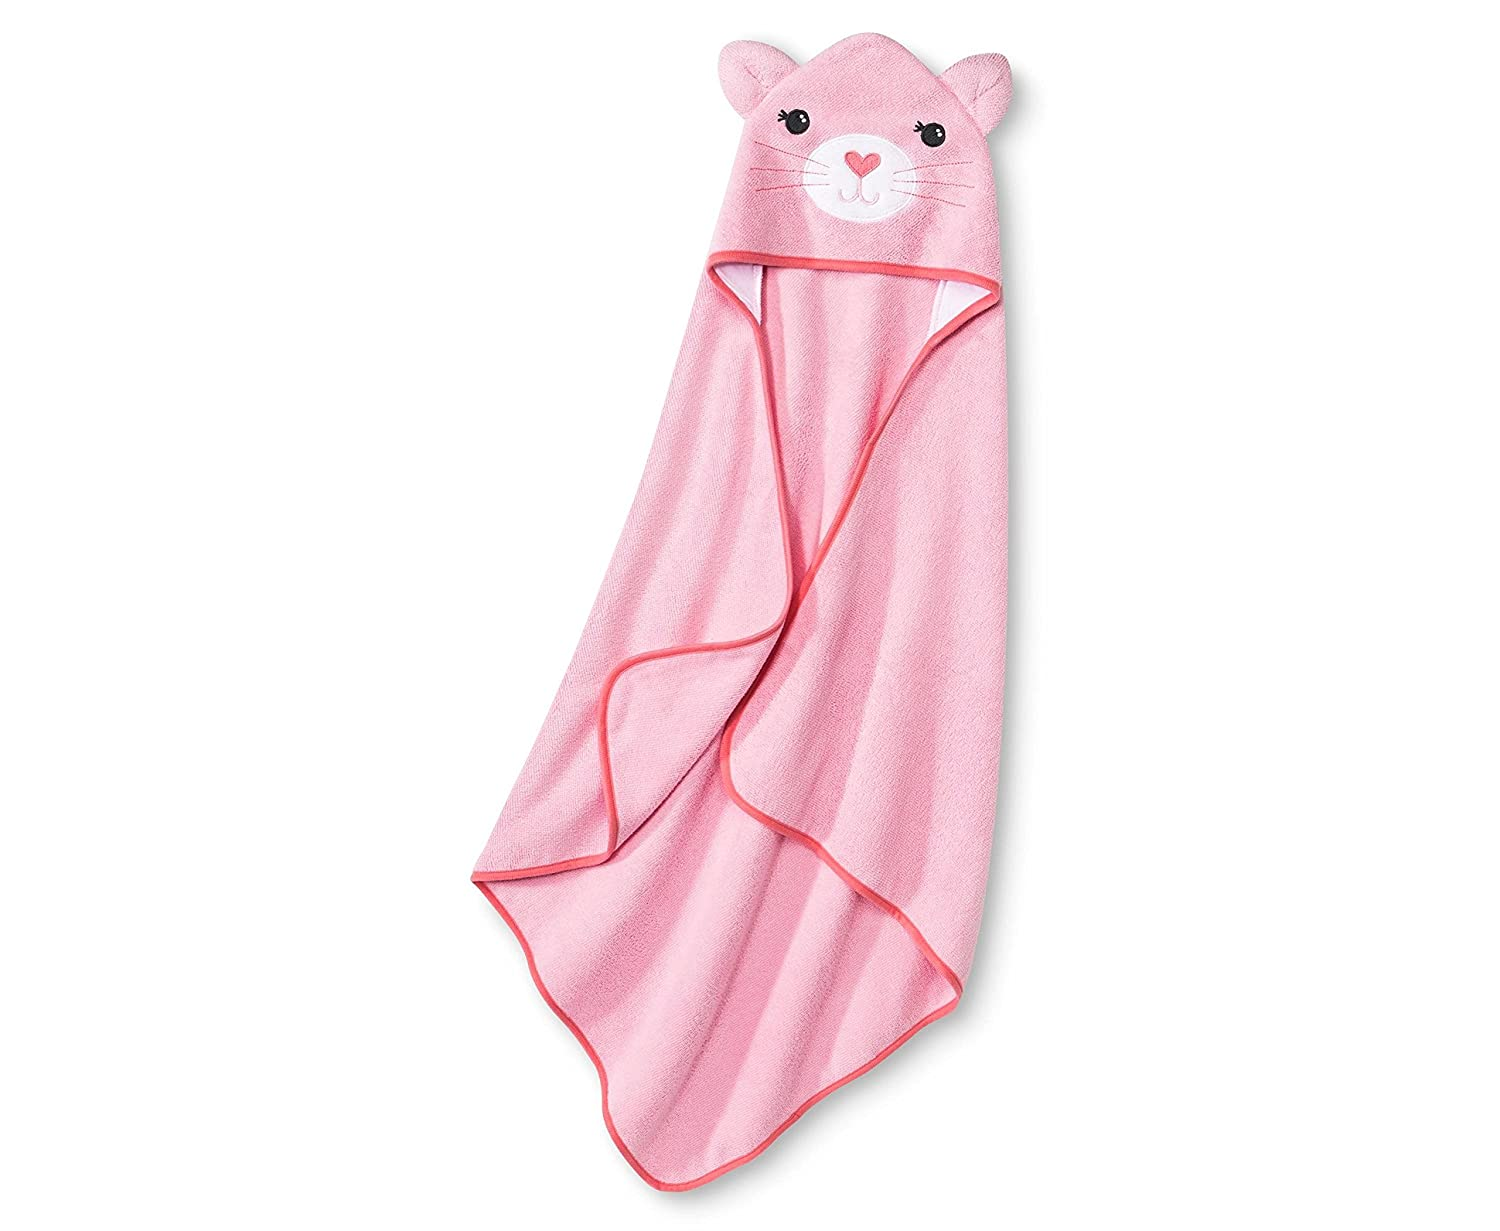 Newborn Boys' Hooded Bath Towel Blue (Pink). Fits Gently Over Baby's Head for Quick Warmth, and Swaddles Cozily for Complete Drying